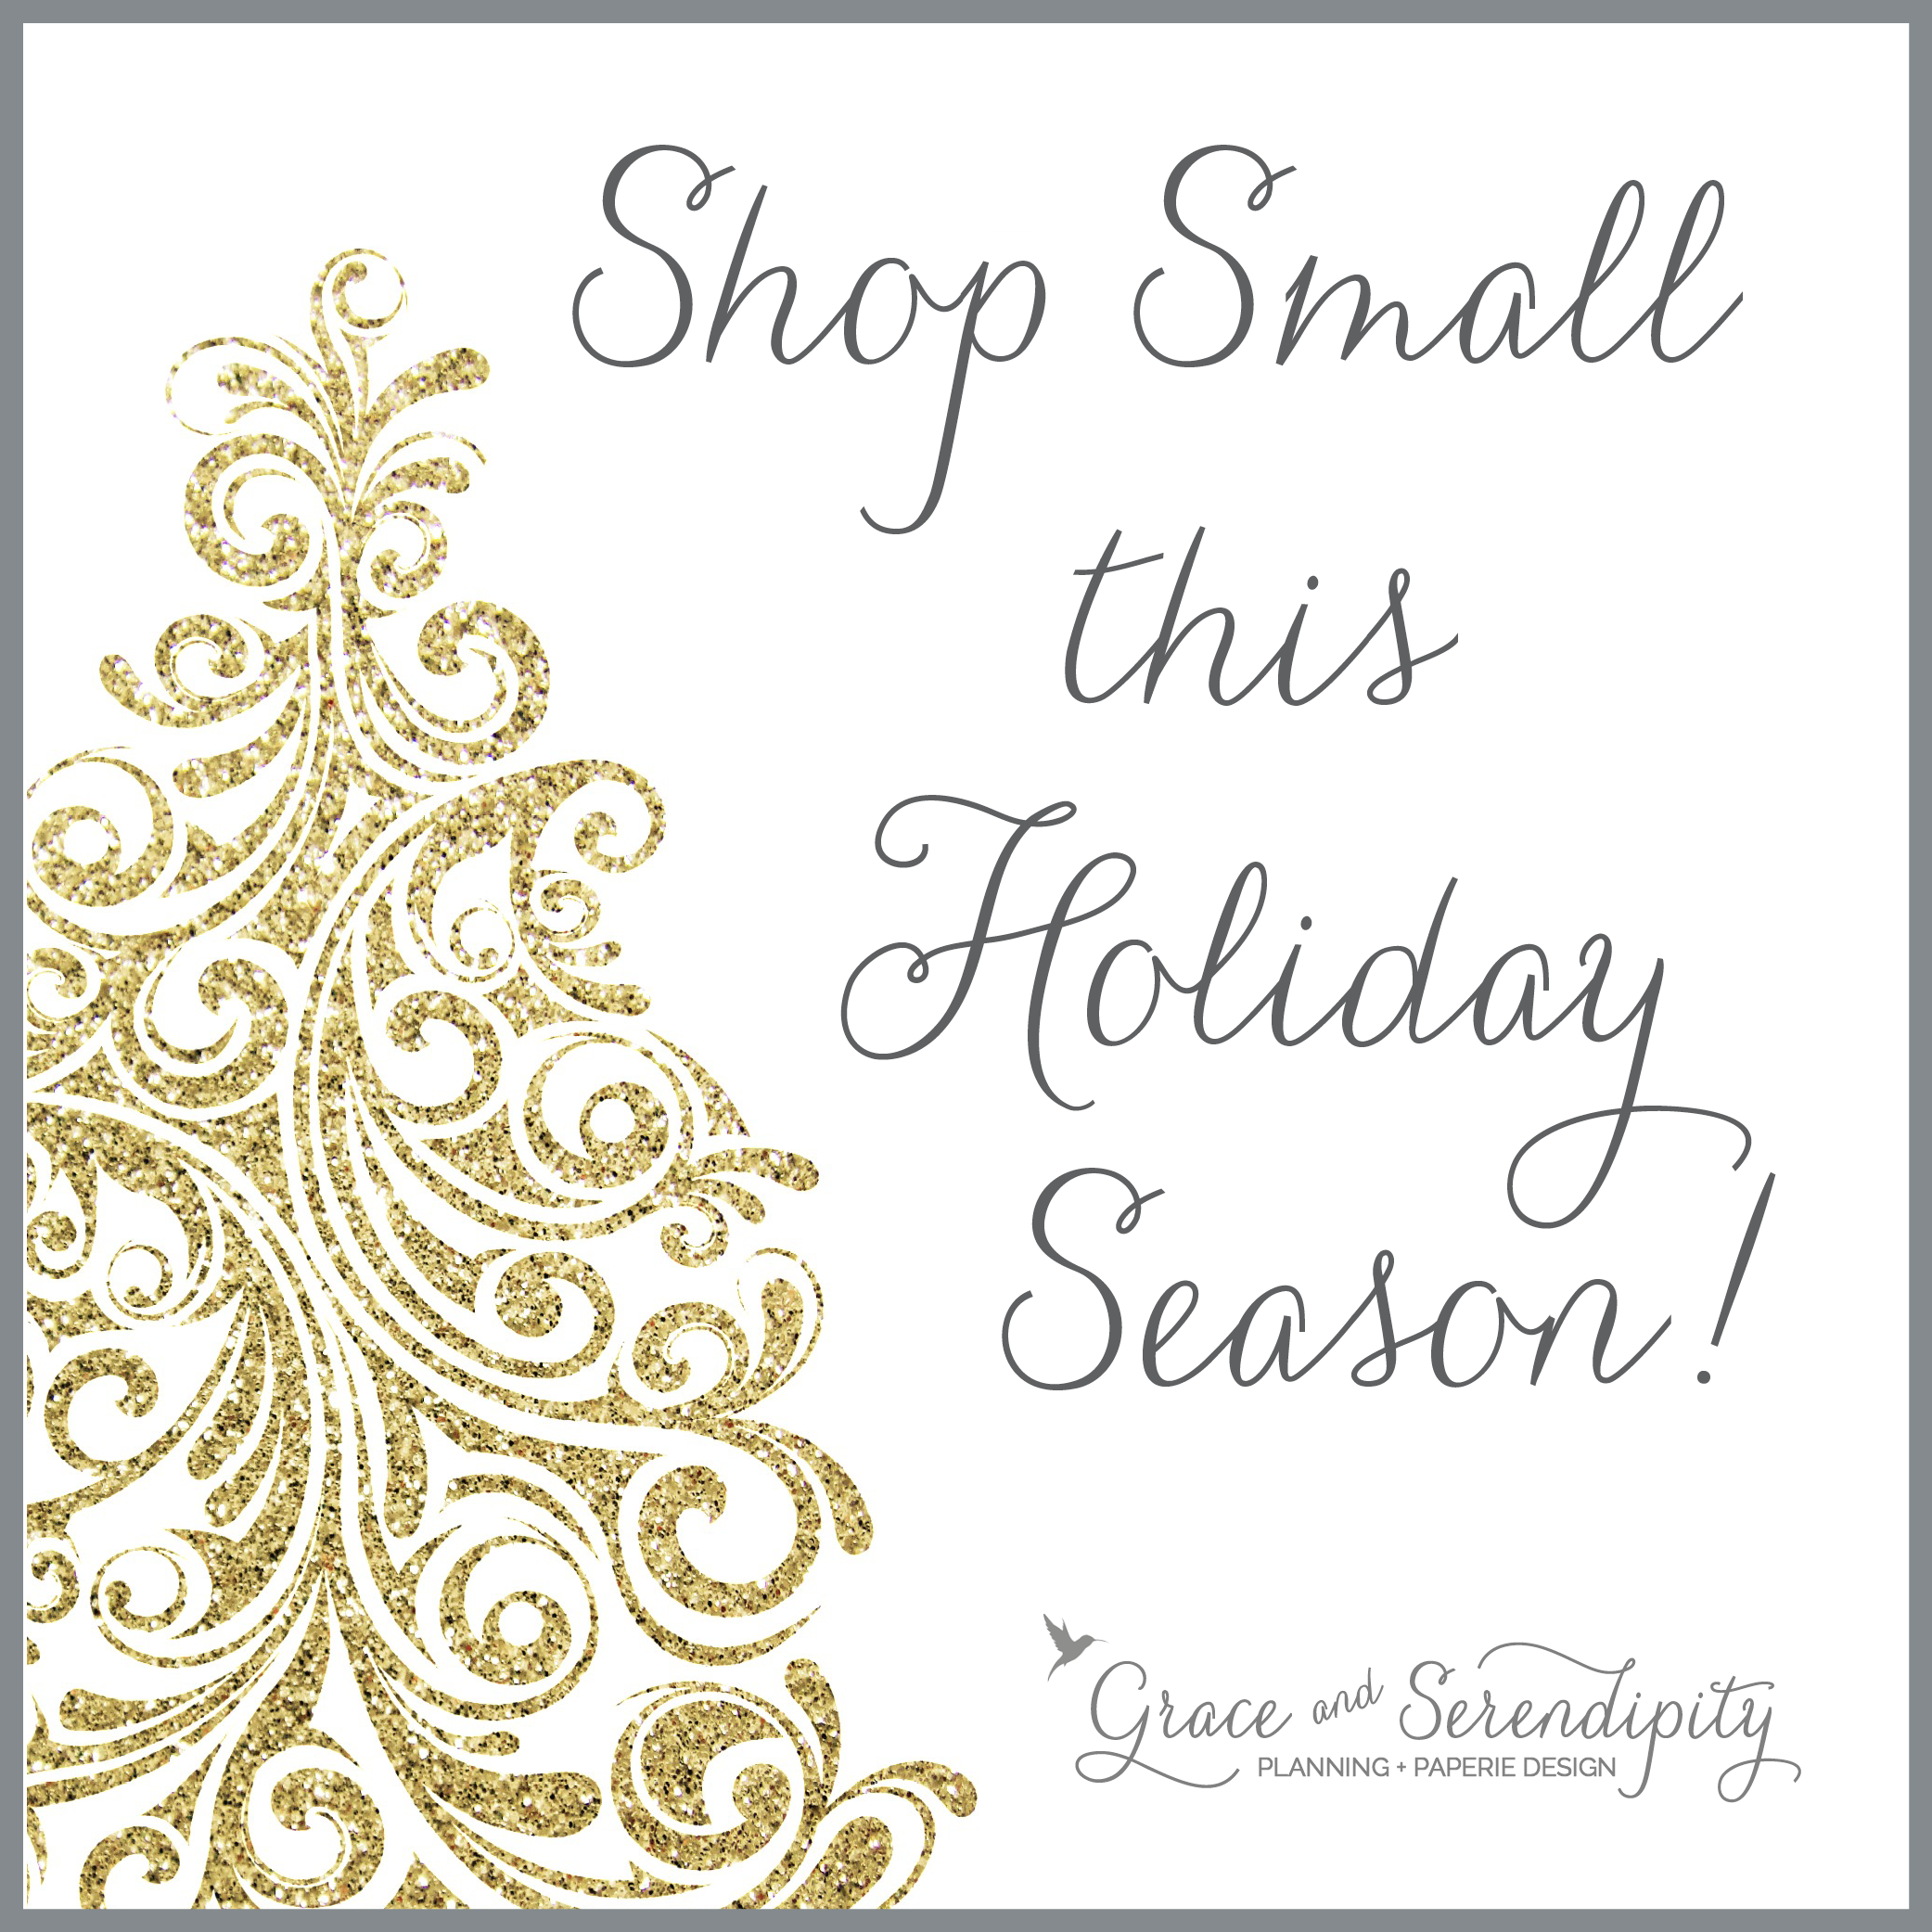 grace and serendipity - shop small this christmas